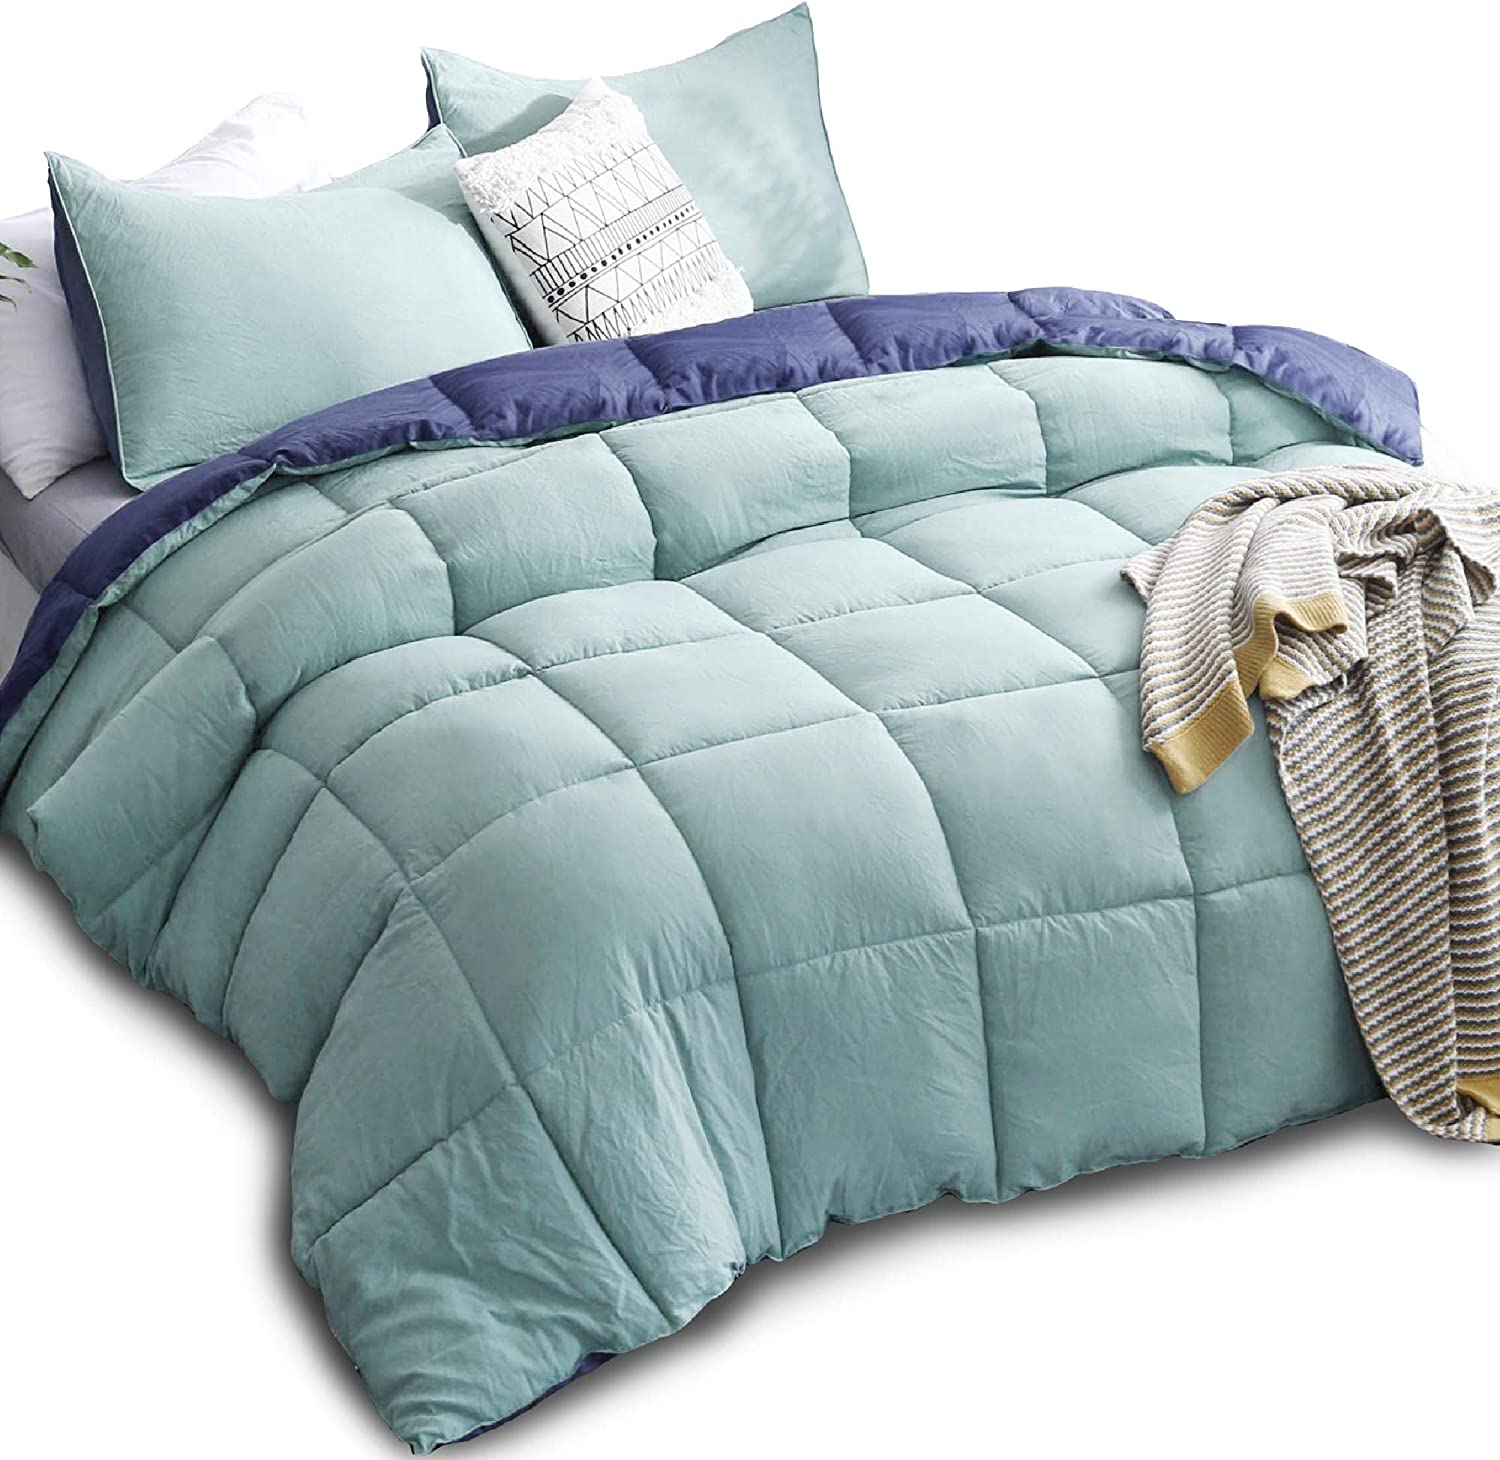 Amazon Com Kasentex All Season Down Alternative Quilted Comforter Set With Sham S Reversible Ultra Soft Duvet Insert Hypoallergenic Machine Washable Queen Turquoise Sea Green Twilight Blue Home Kitchen